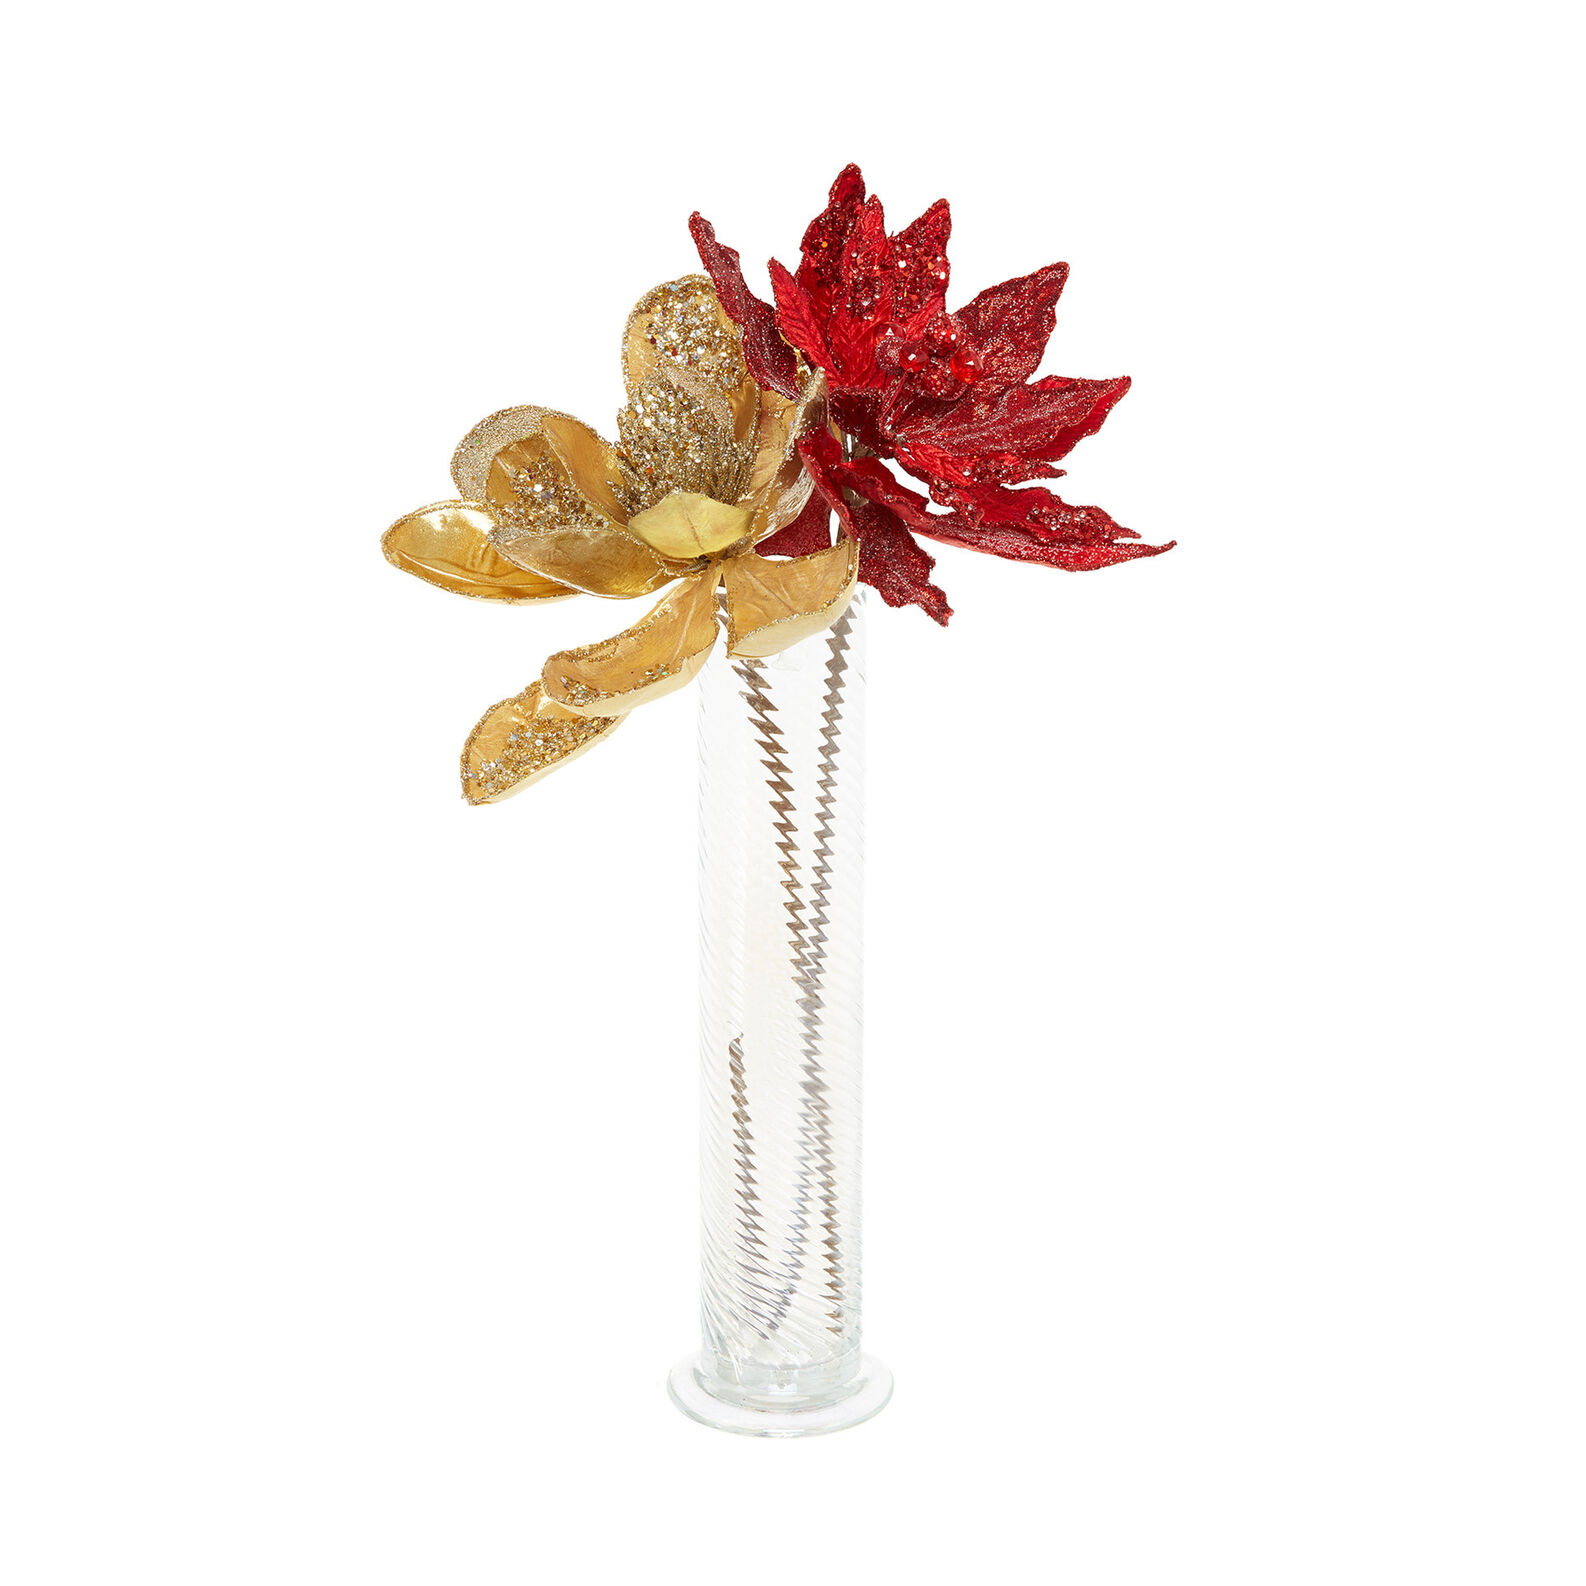 Hand-decorated jewelled poinsettia